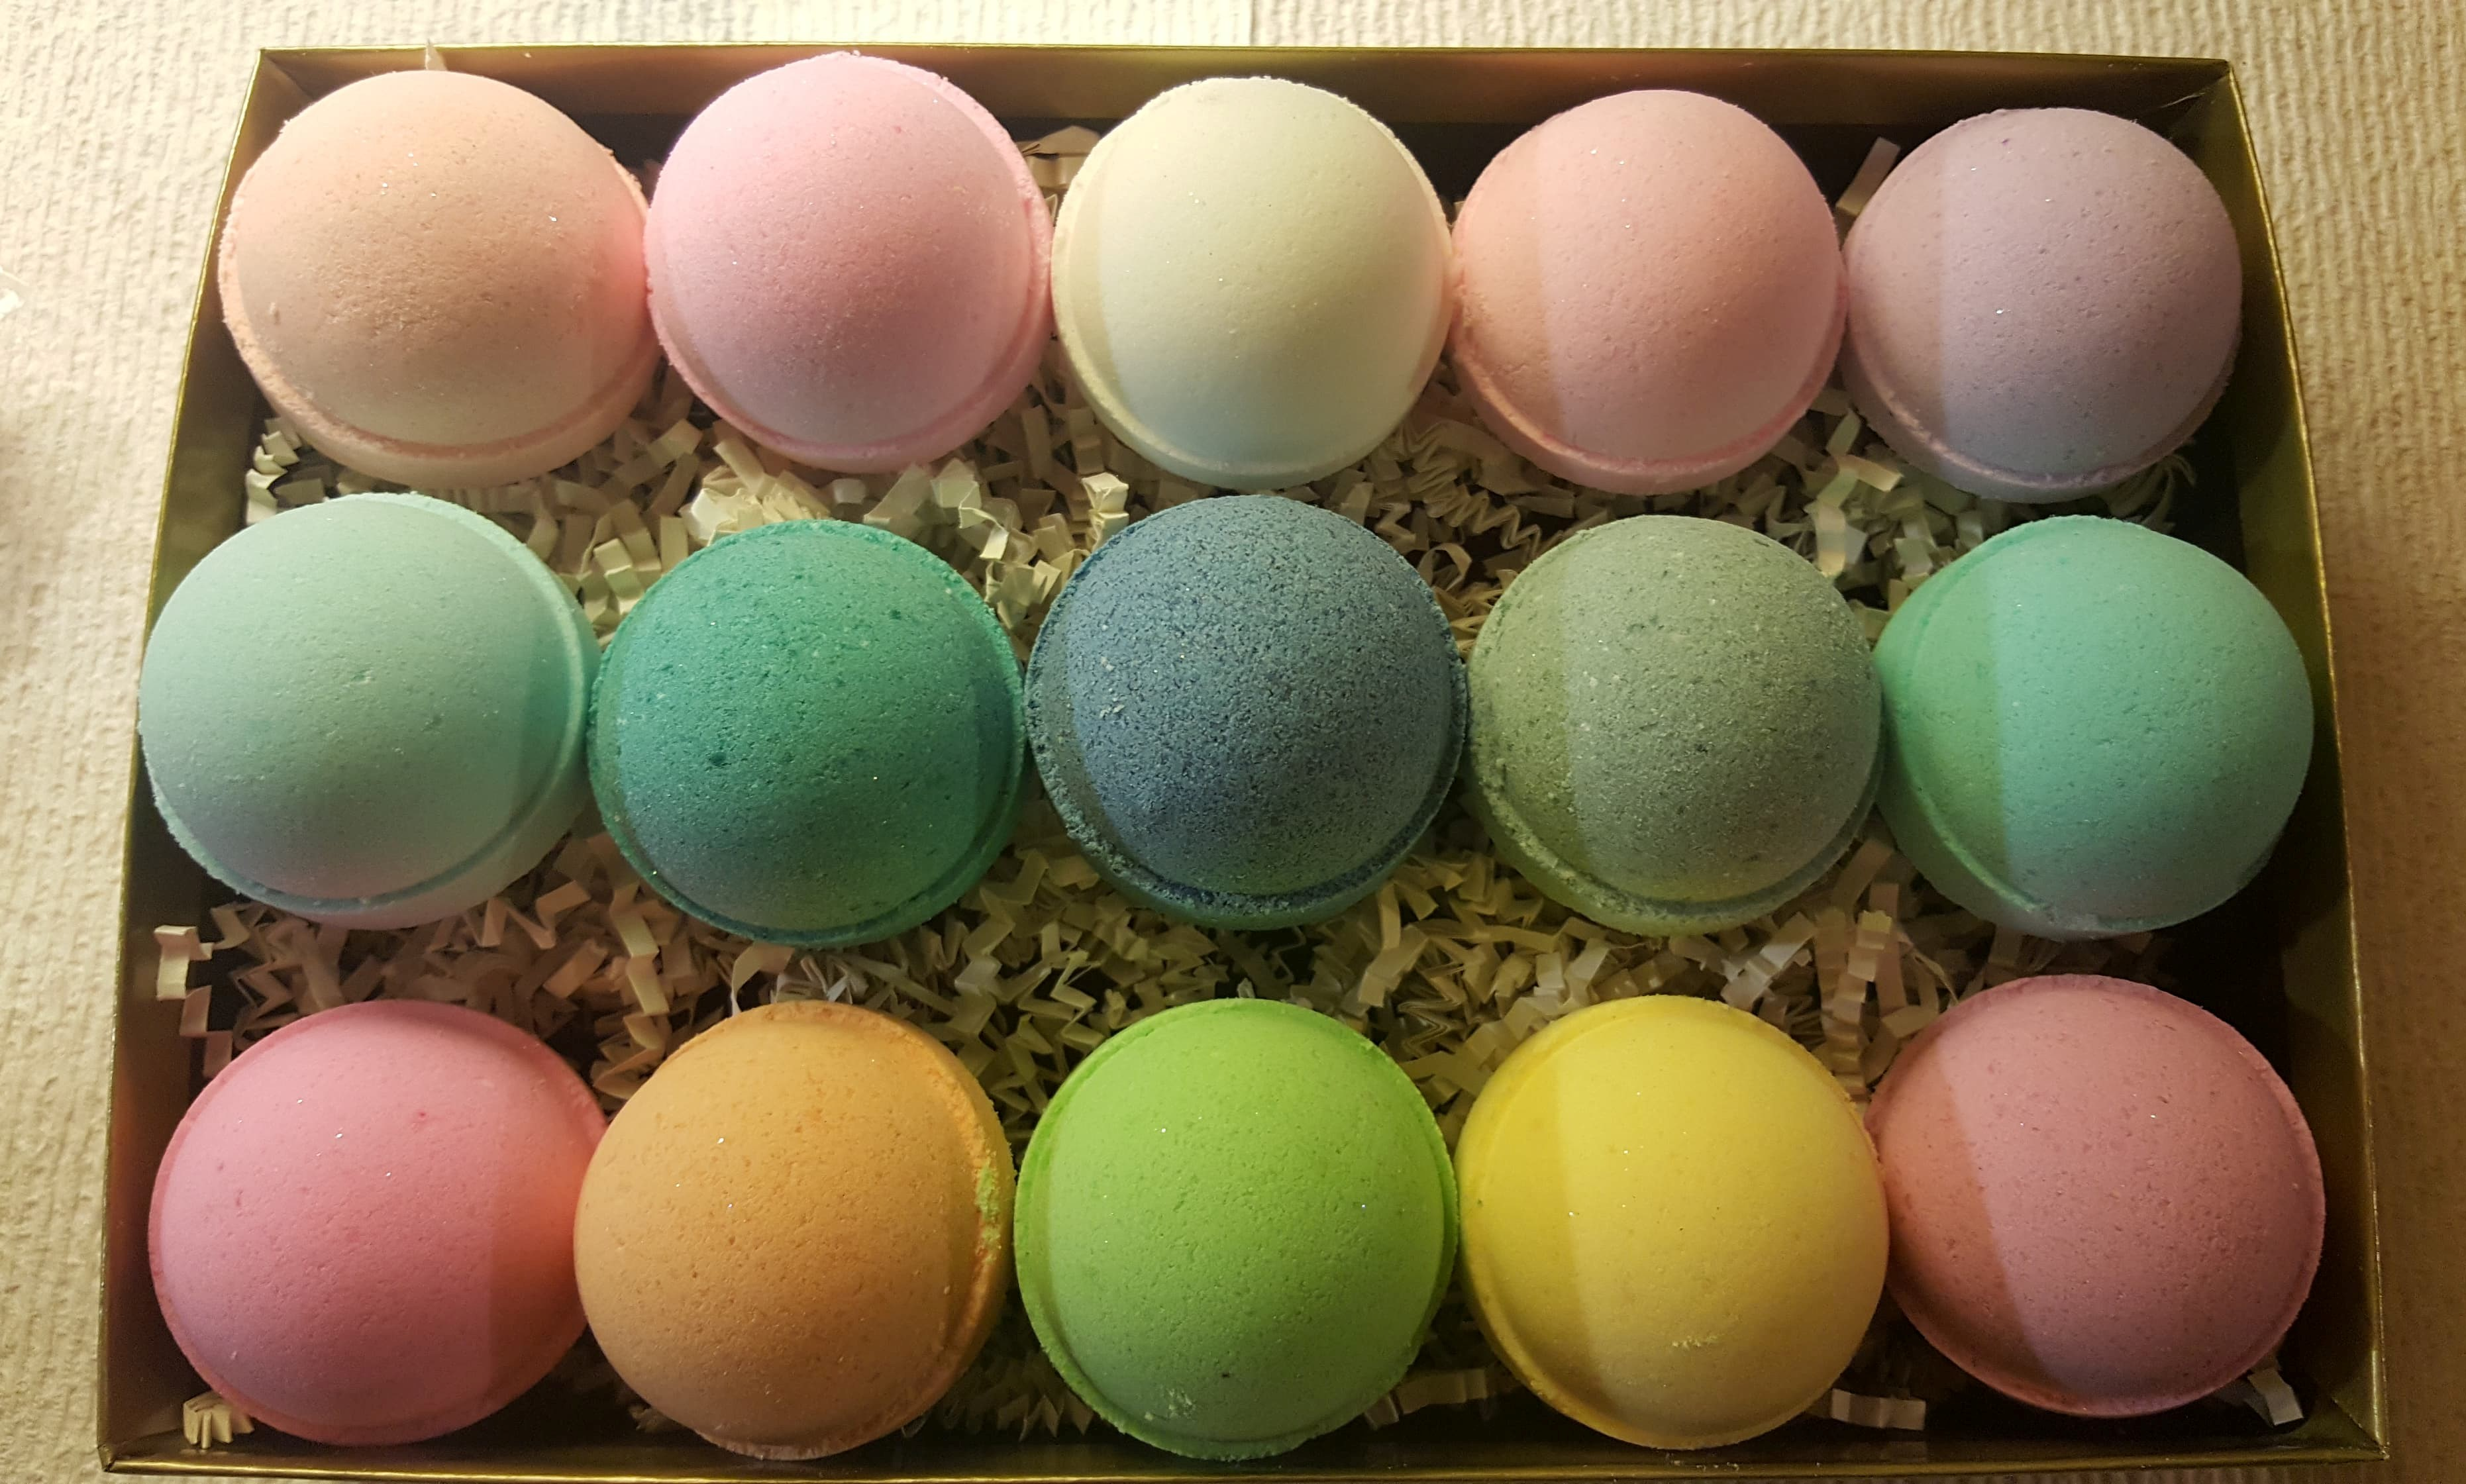 100 BATH BOMBS Wholesale - USA Made Organic & Natural Fizzies Fun Bridal or Baby Shower Favors. Buy Bulk & Save. Makes a Unique Relaxing Gift Idea ...